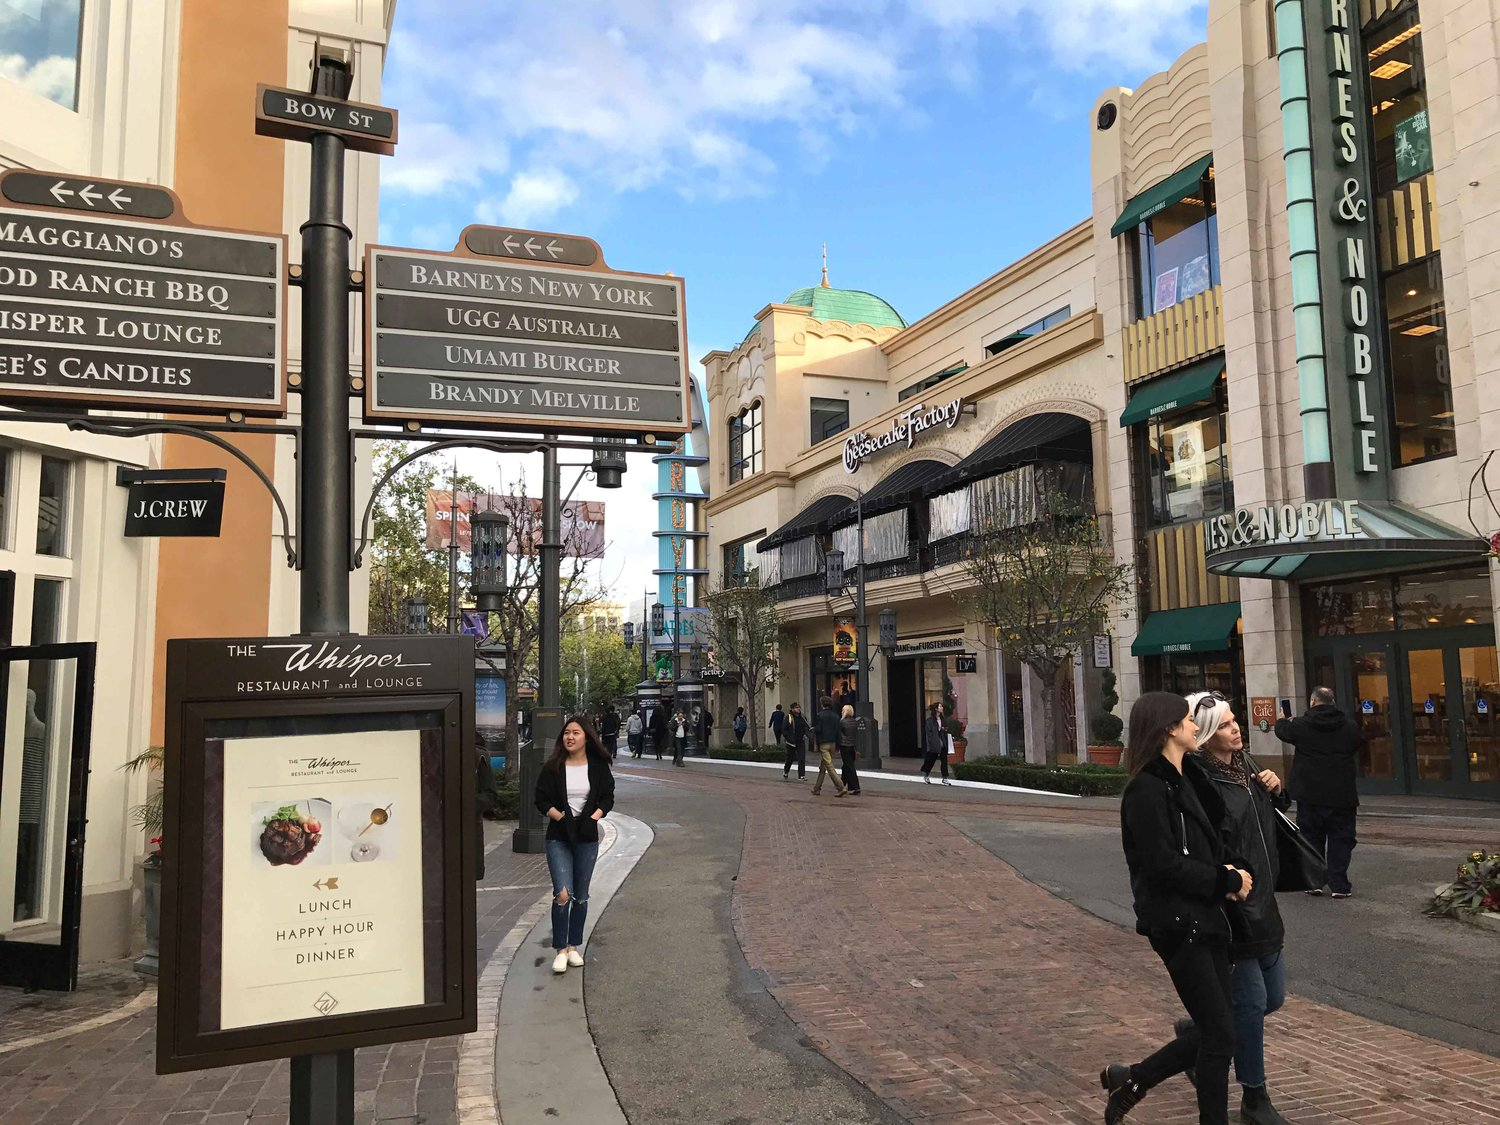 Things to do in Los Angeles: shopping at The Grove | Things to Dot on the grove at farmers market, the grove mall pretoria, third street promenade, otay ranch town center, westfield topanga, the grove mall in california, south coast plaza, the grove beverly hills, los angeles sports and entertainment district, the grove trolley, the grove santa, westfield century city, the grove wesley chapel, sunrise mall, the improv, universal citywalk, the grove shopping center, santa monica place, the grove shopping mall, glendale galleria, the grove 3rd street, cbs television city, del amo fashion center, the beverly center, the grove ca, the grove movie theater, fashion island, the grove in hollywood, the grove la, angels flight, the grove fountain, americana at brand,